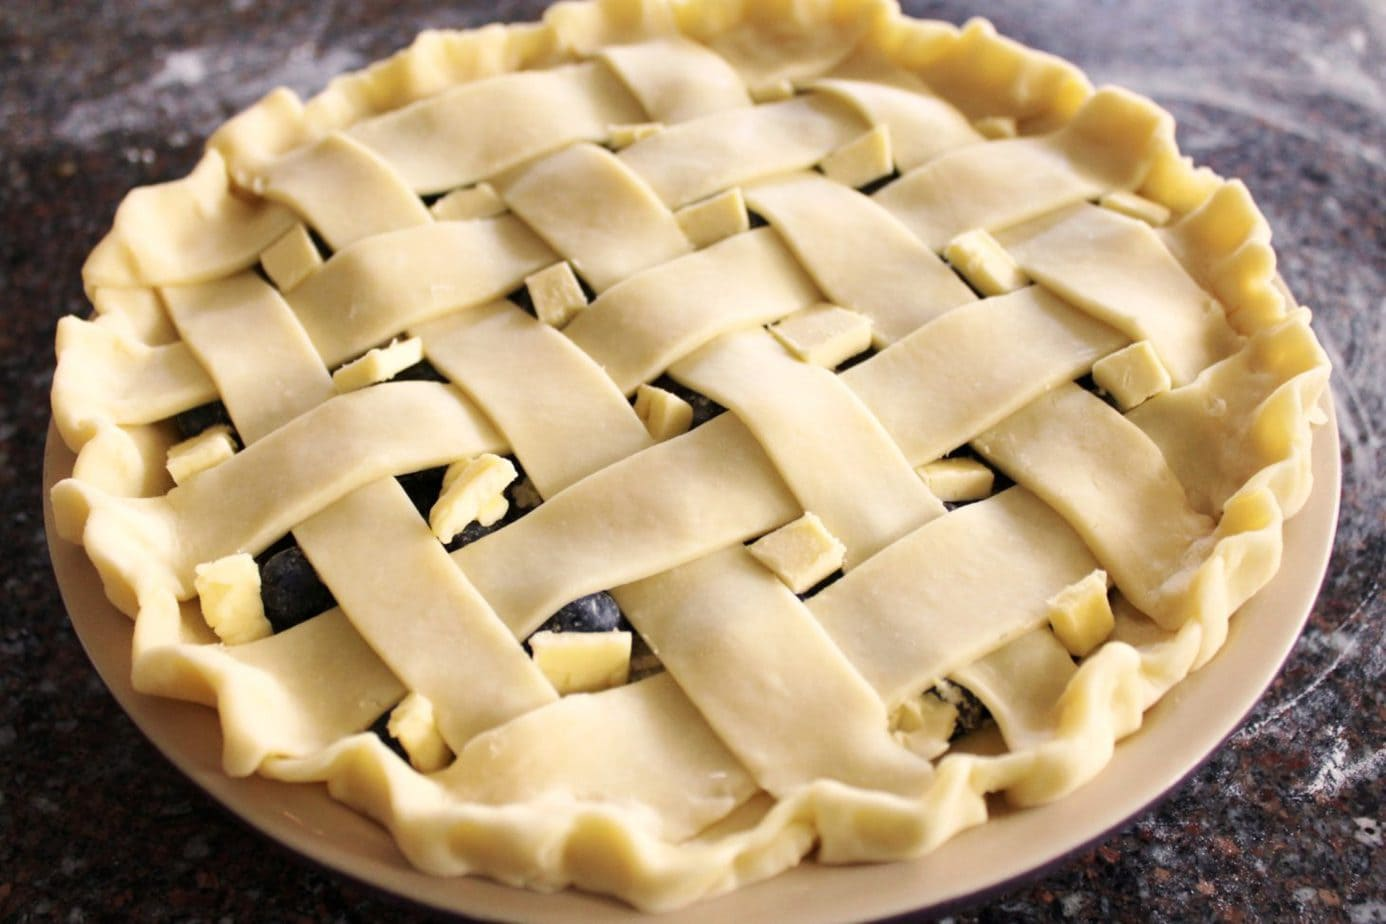 An unbaked pie with a lattice pastry top.